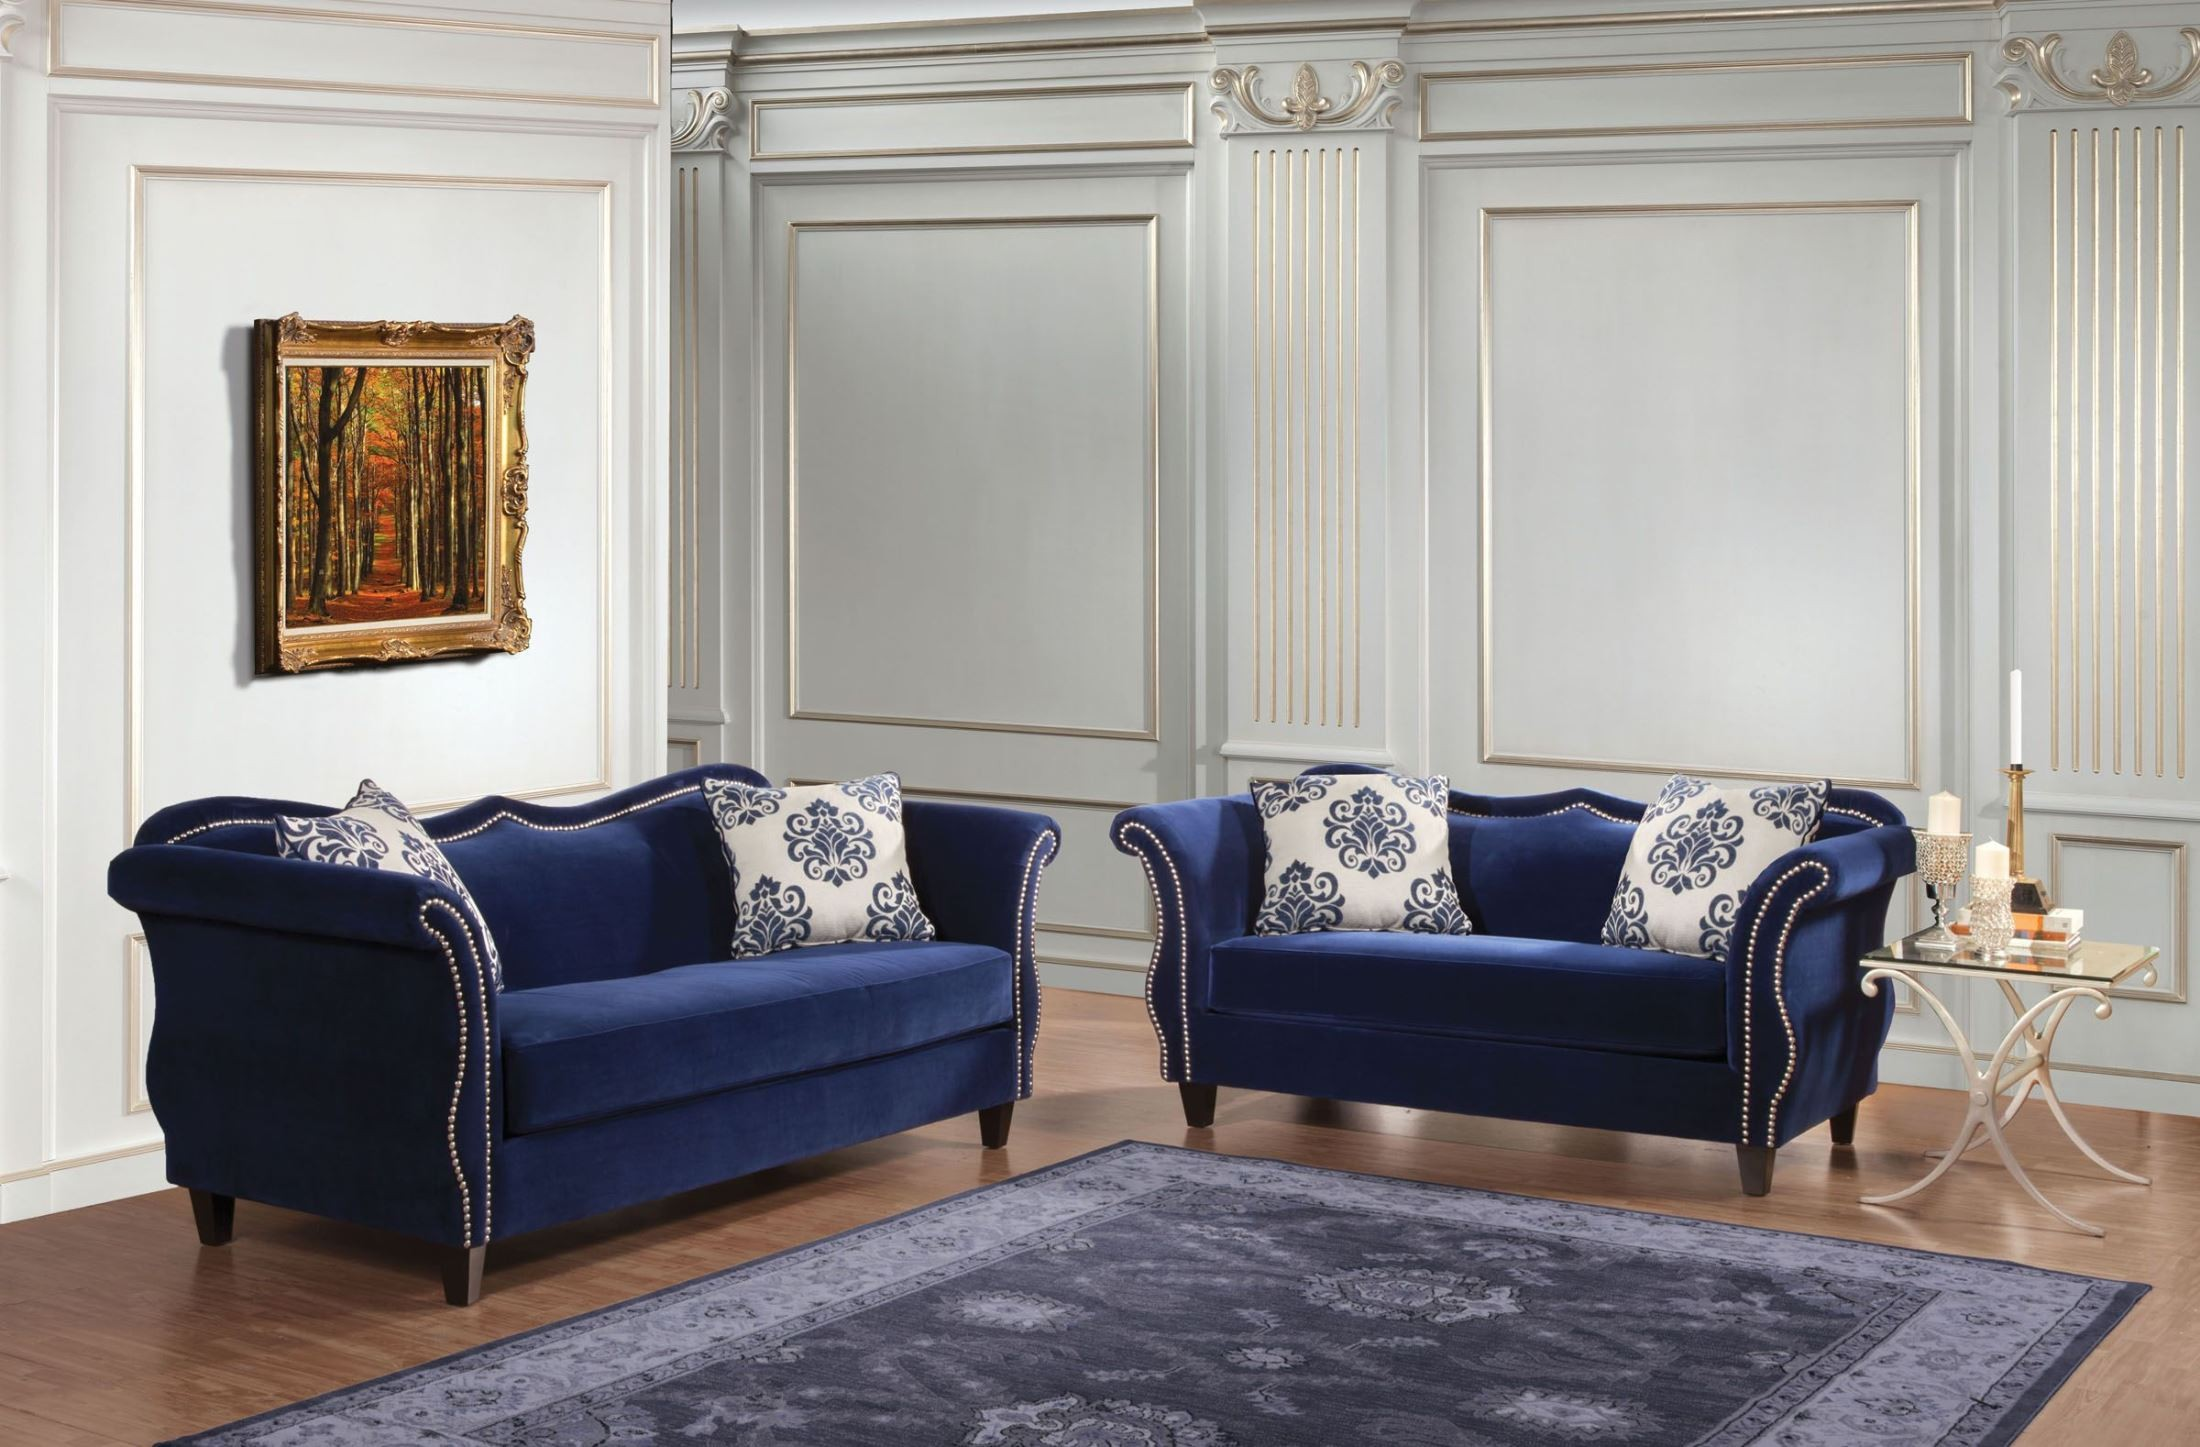 Zaffiro royal blue living room set sm2231 sf furniture Living room furniture images